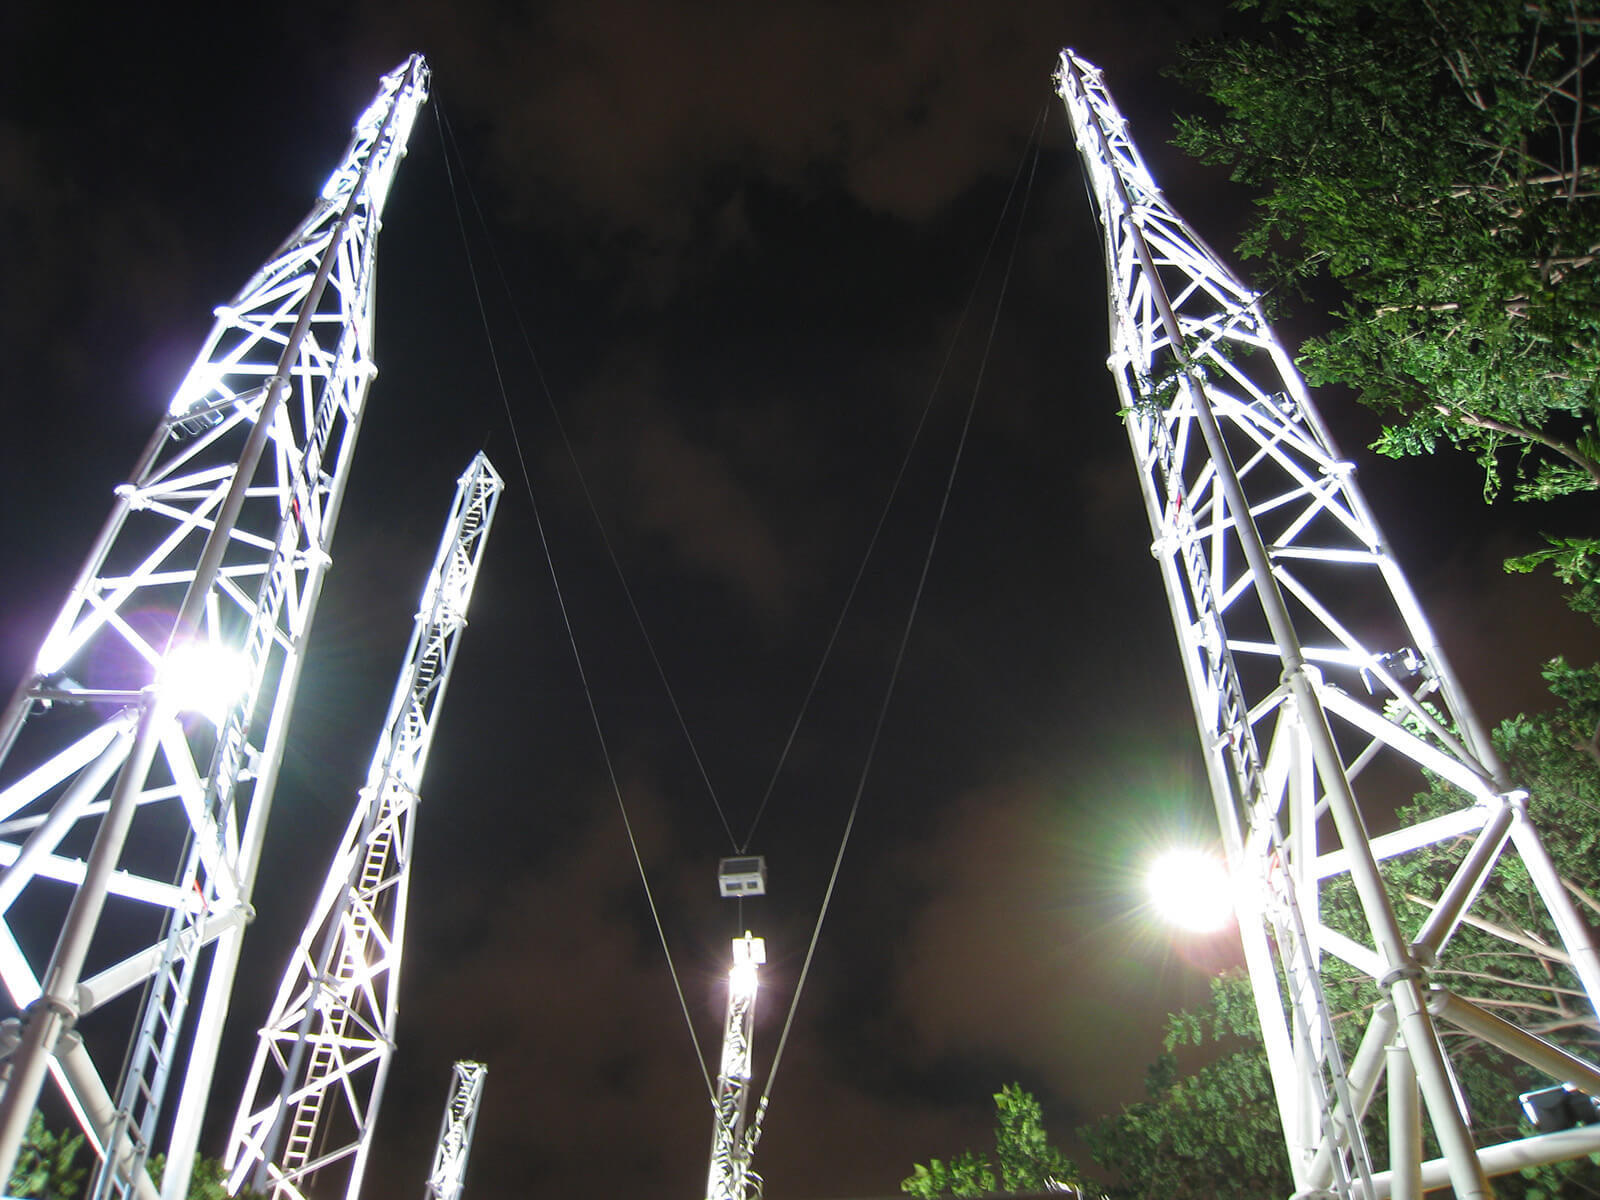 Offbeat Singapore activity #1: the G-MAX reserve bungee jump is a wild ride and very f'in cool!